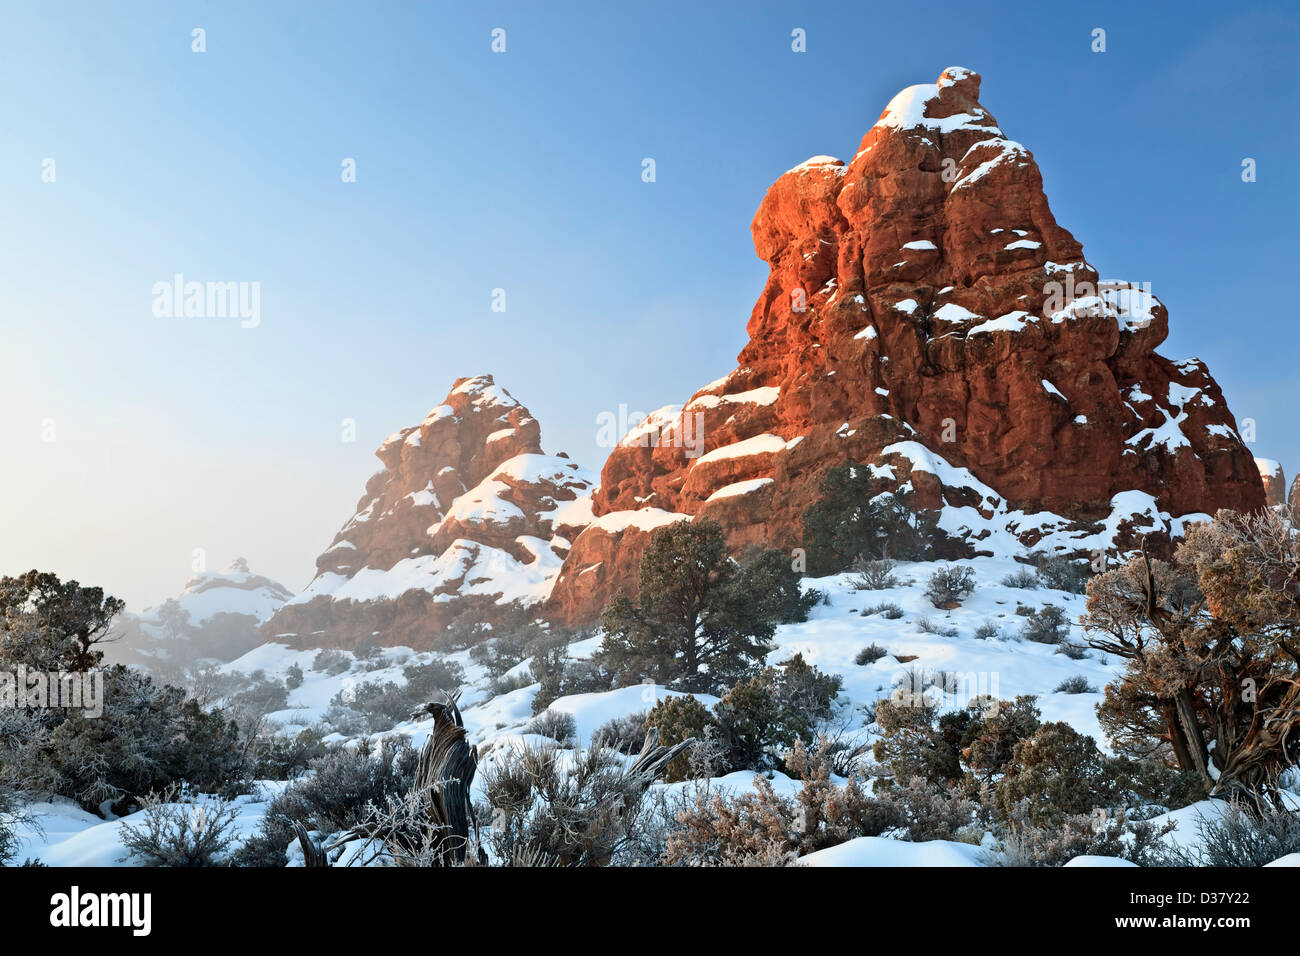 Sandstein-Formationen und Landschaft unter Schnee, The Windows Arches-Nationalpark, Utah, USA Stockbild